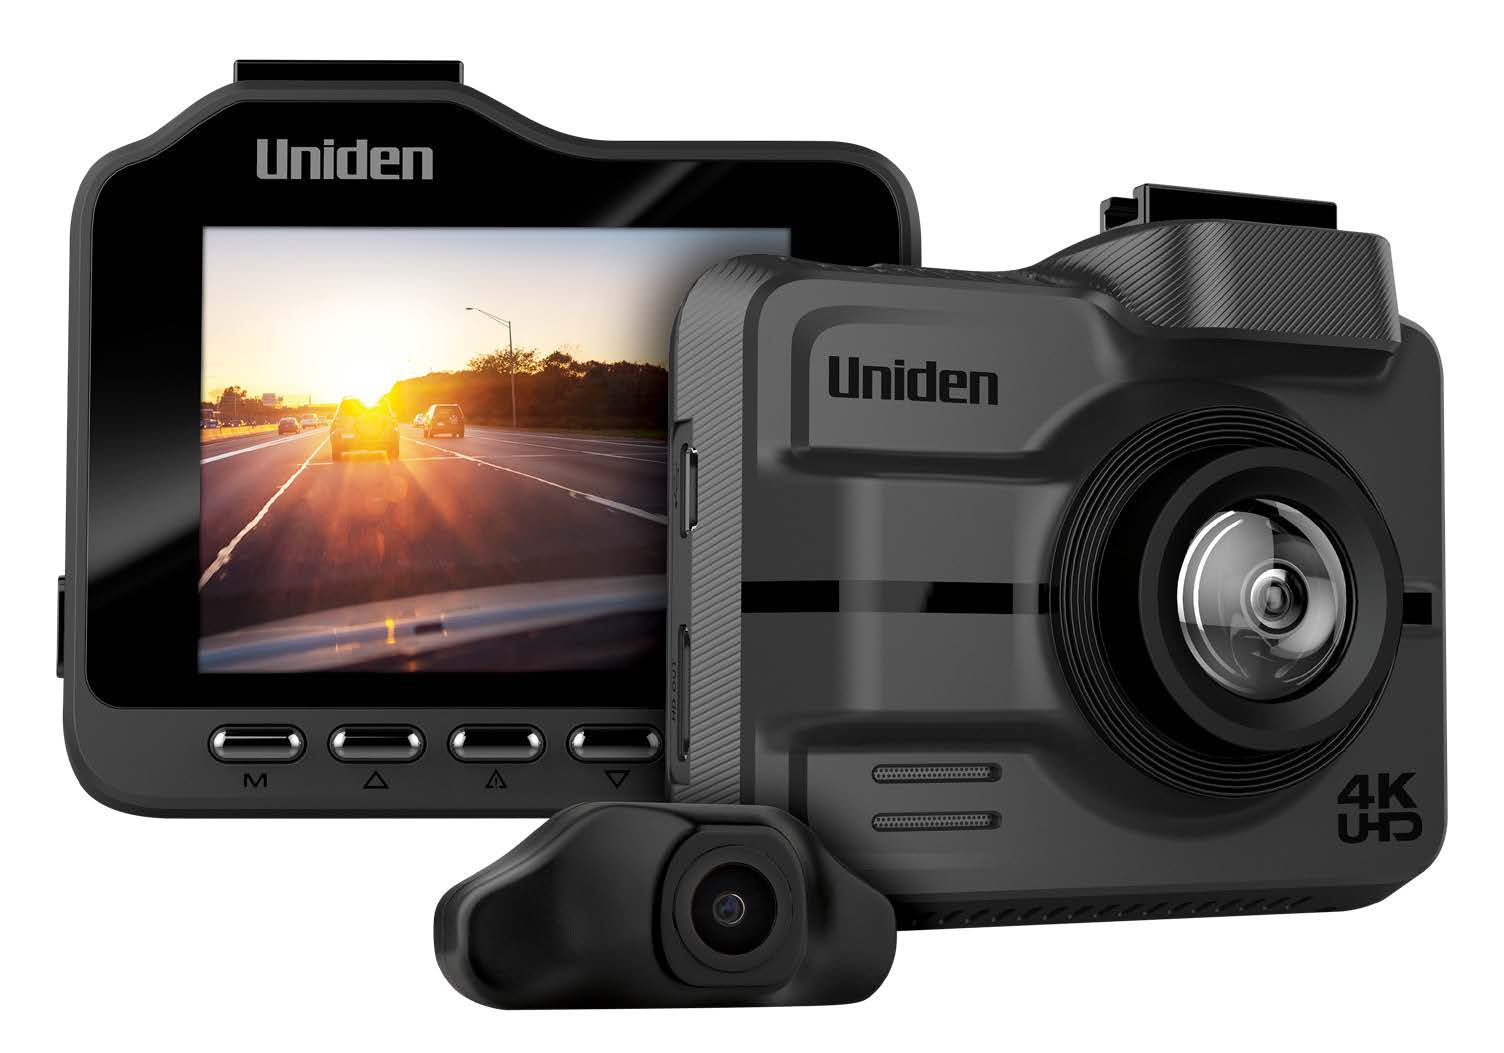 uniden igo85r SmartHouse Best Of The Best Awards 2020: Cameras And Video Call Gear